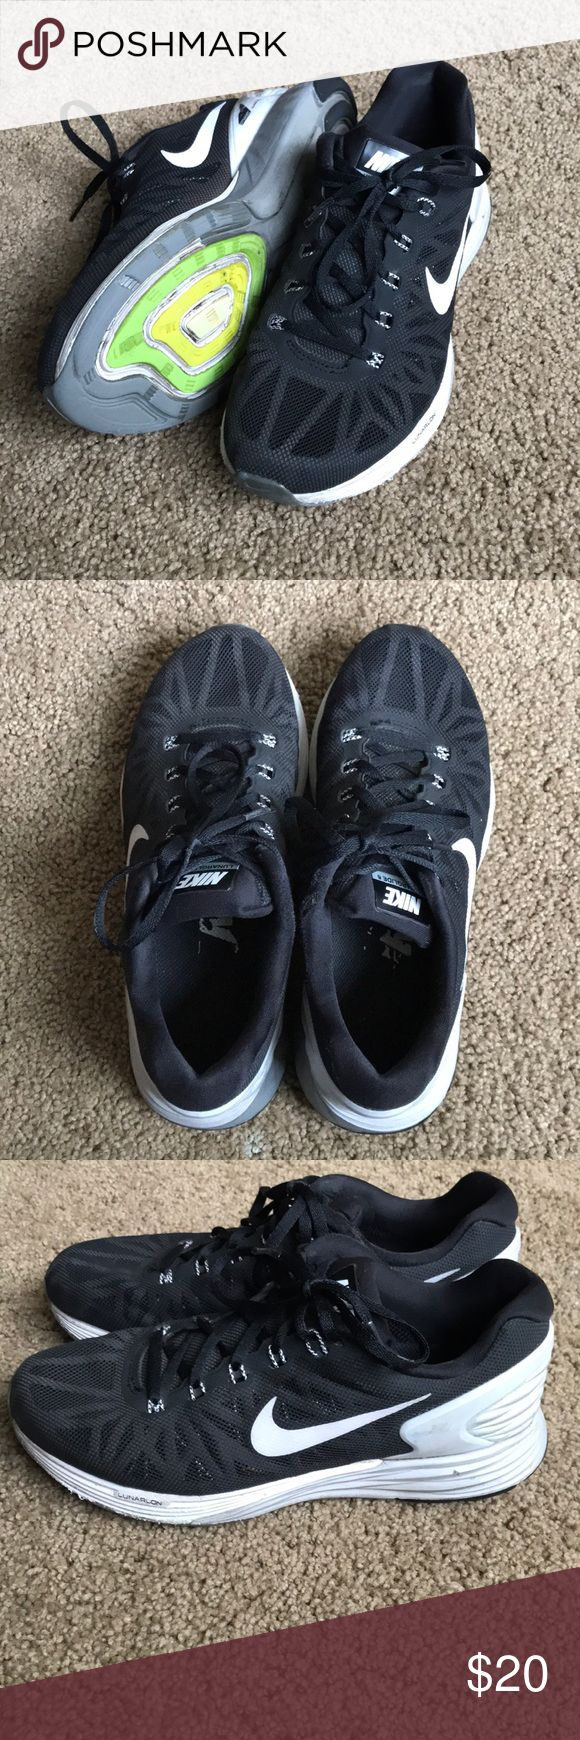 Nike Lunarglide 6 sneakers. Size 6.5 Slightly worn black Nike lunarglide 6 athletic shoes. Size 6.5. Barely worn still great condition!! Just want to get rid of shoes to make more room. Willing to negotiate price :) Nike Shoes Athletic Shoes